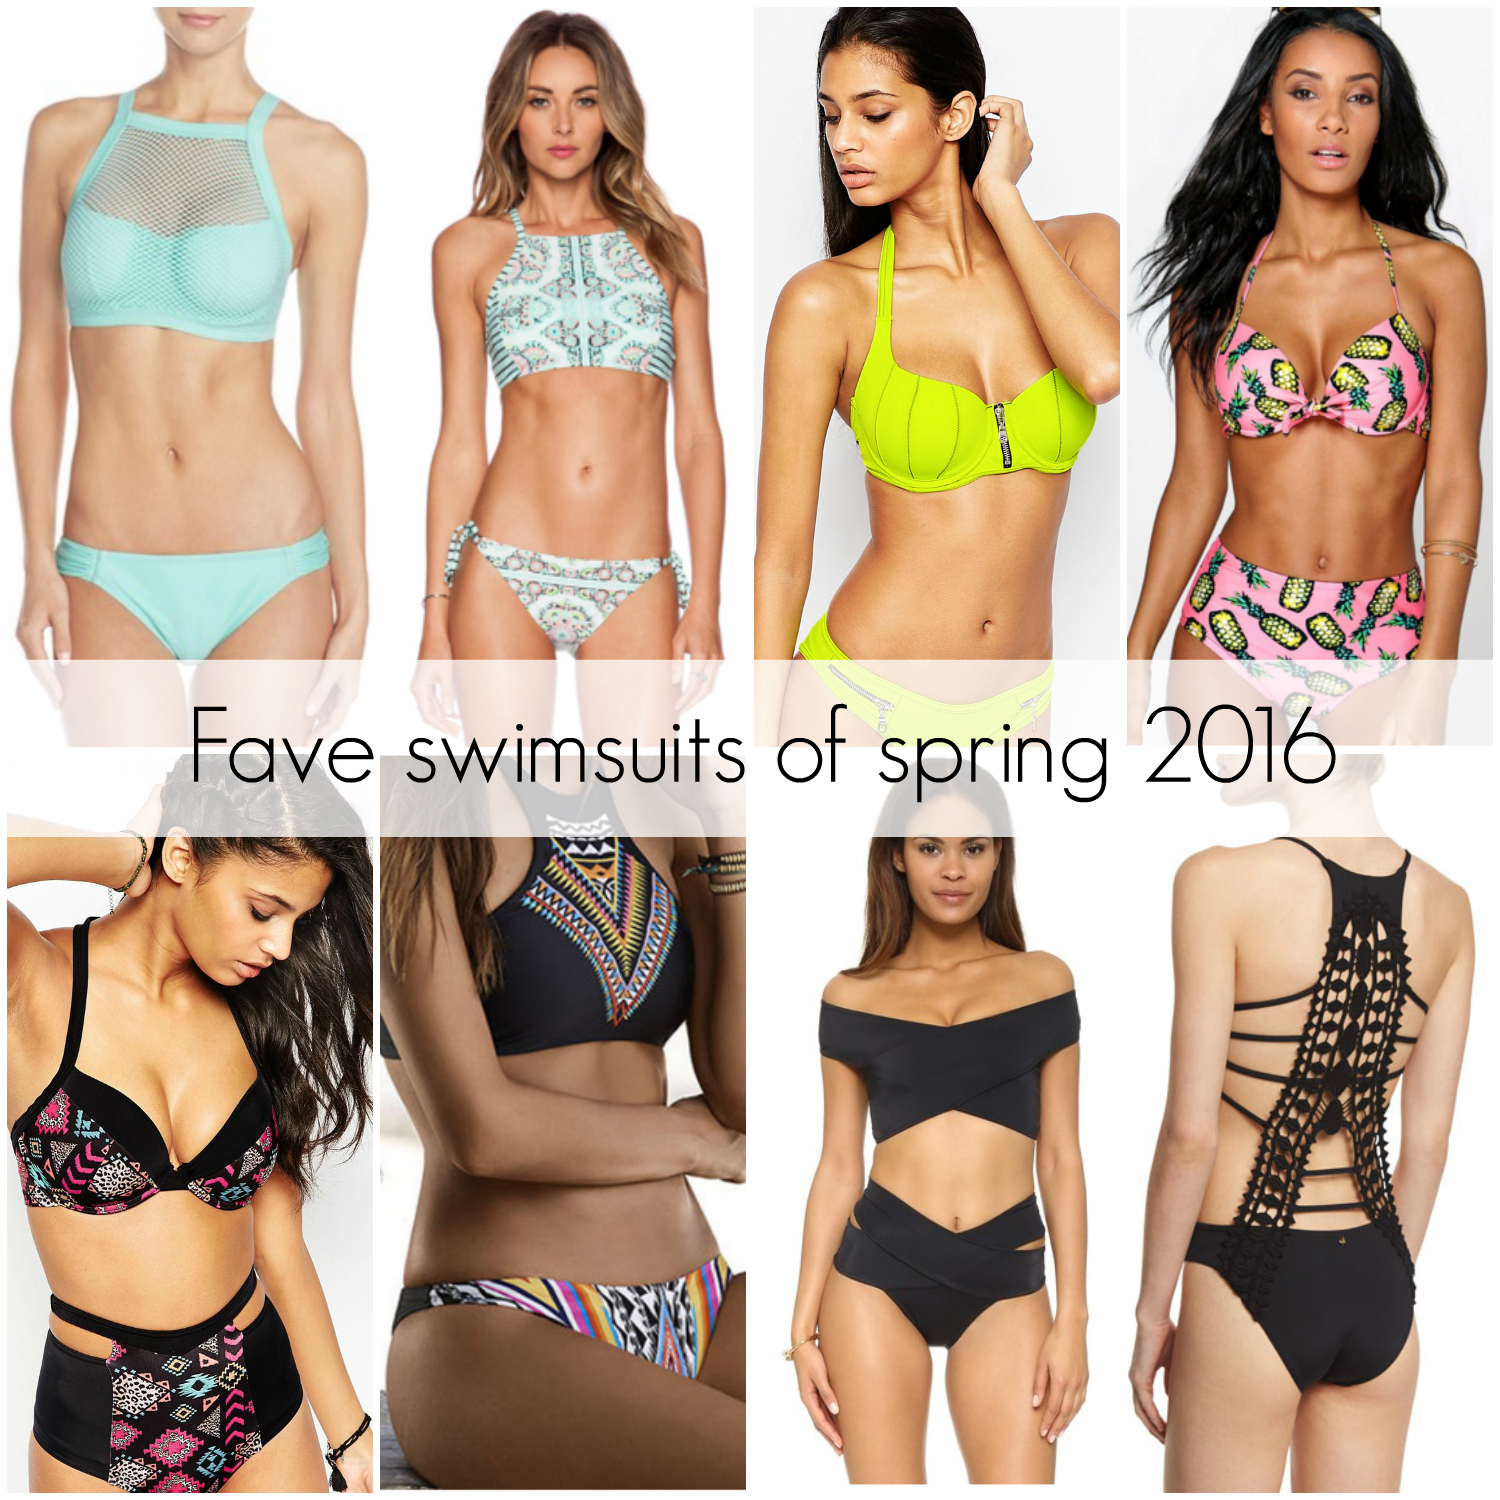 Swimsuit favorites of spring 2016